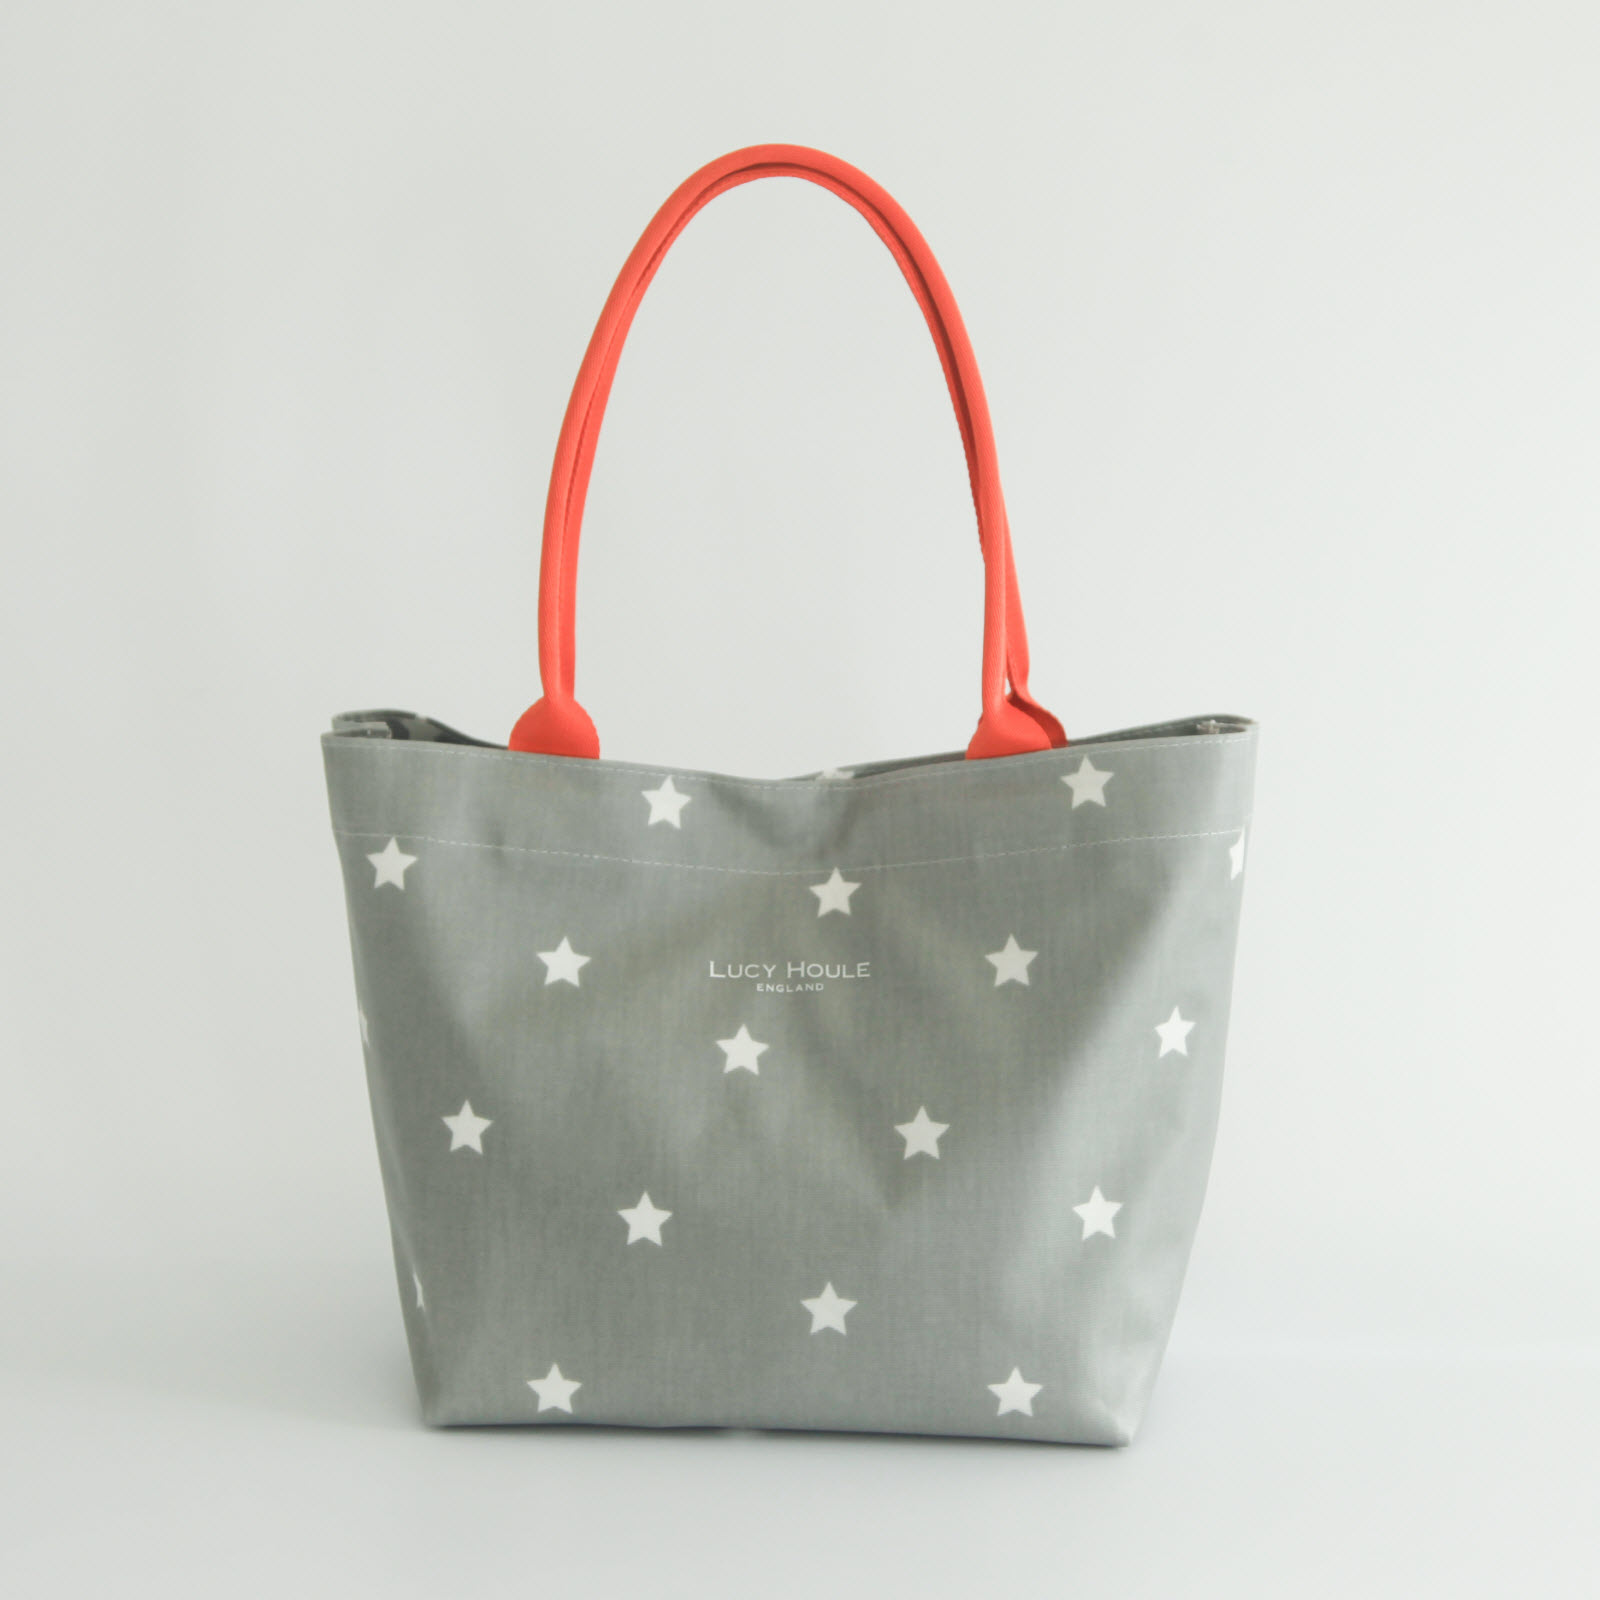 Grey & White Star Small Tote Bag with Orange Handles